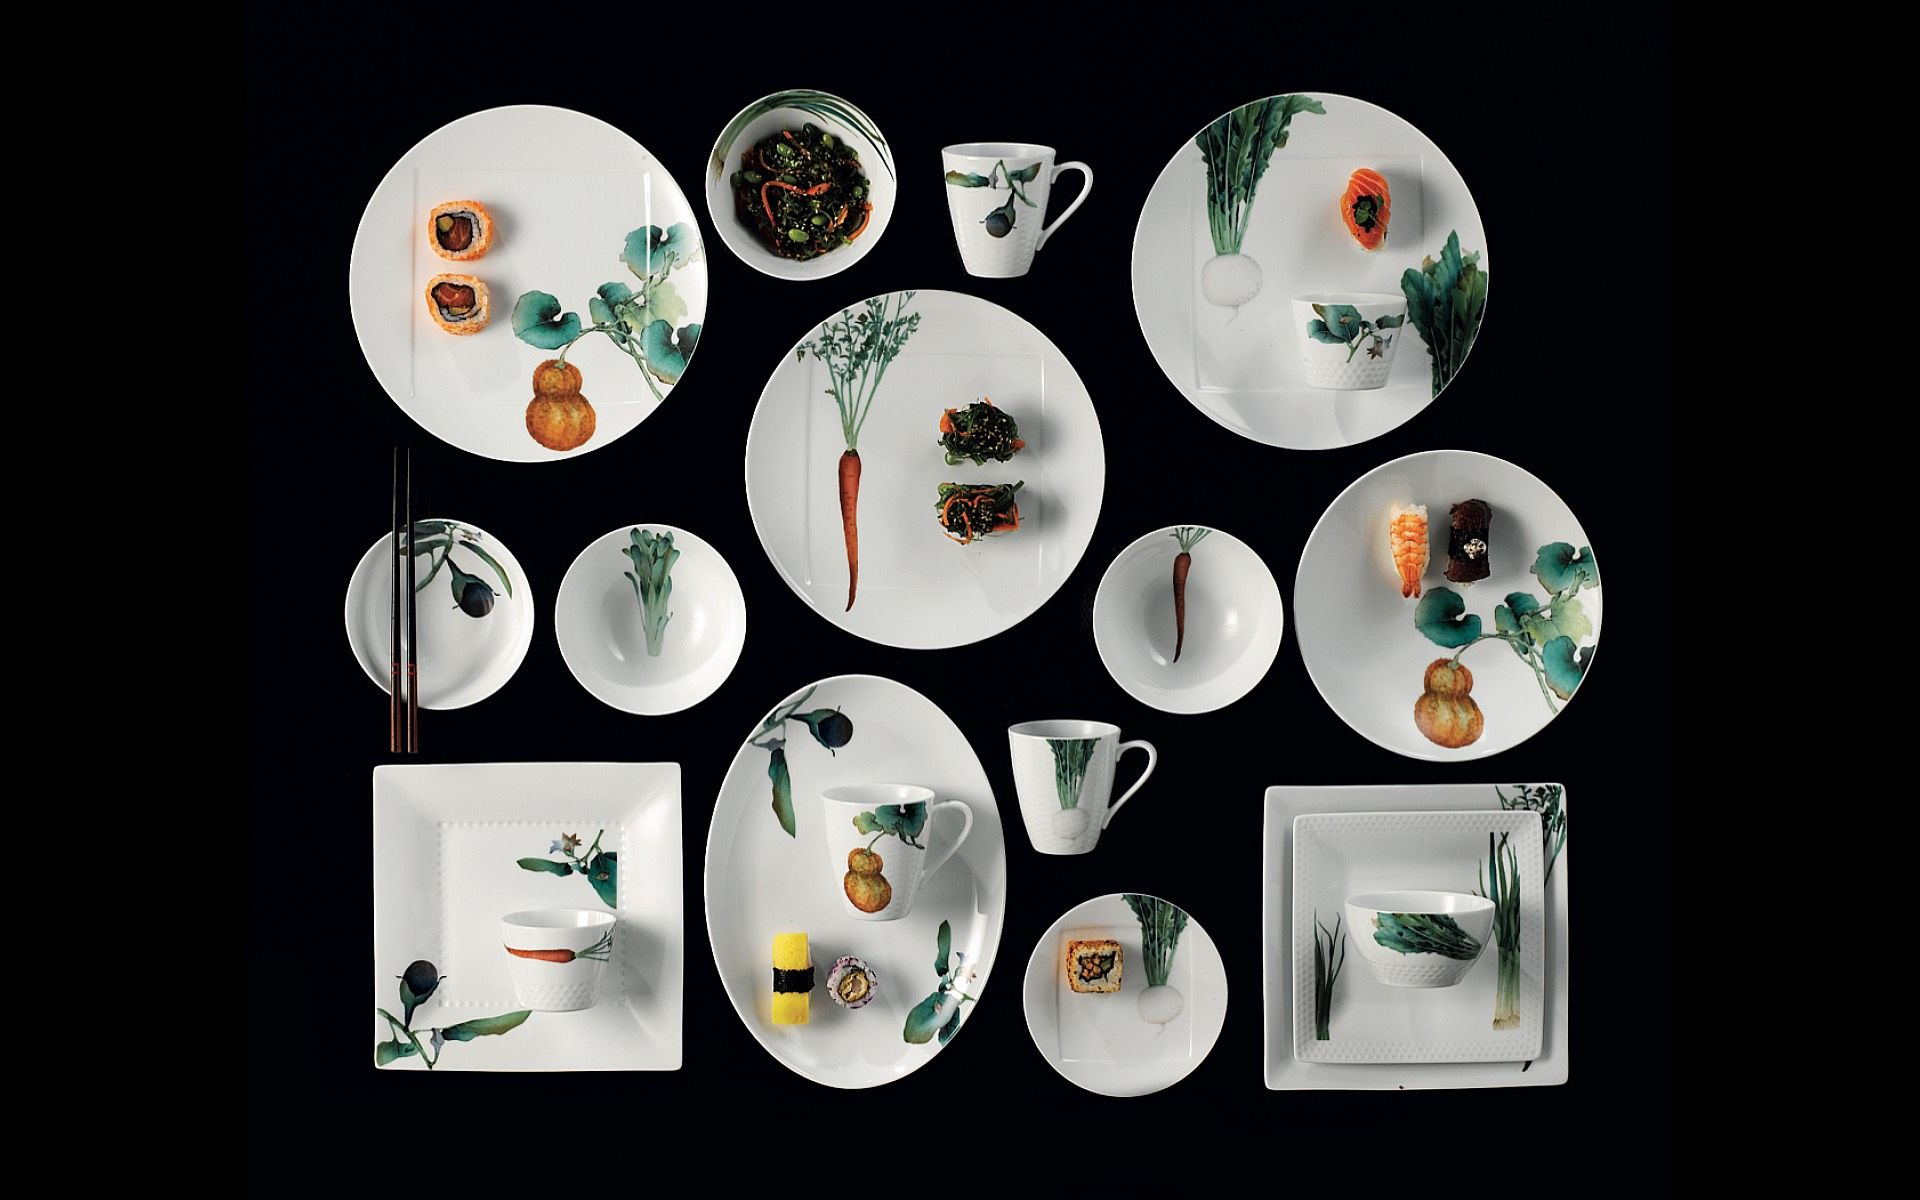 Noritake's Kyoka Shunsai collection served as one-of-a-kind trophies at the Tatler Dining Awards 2021